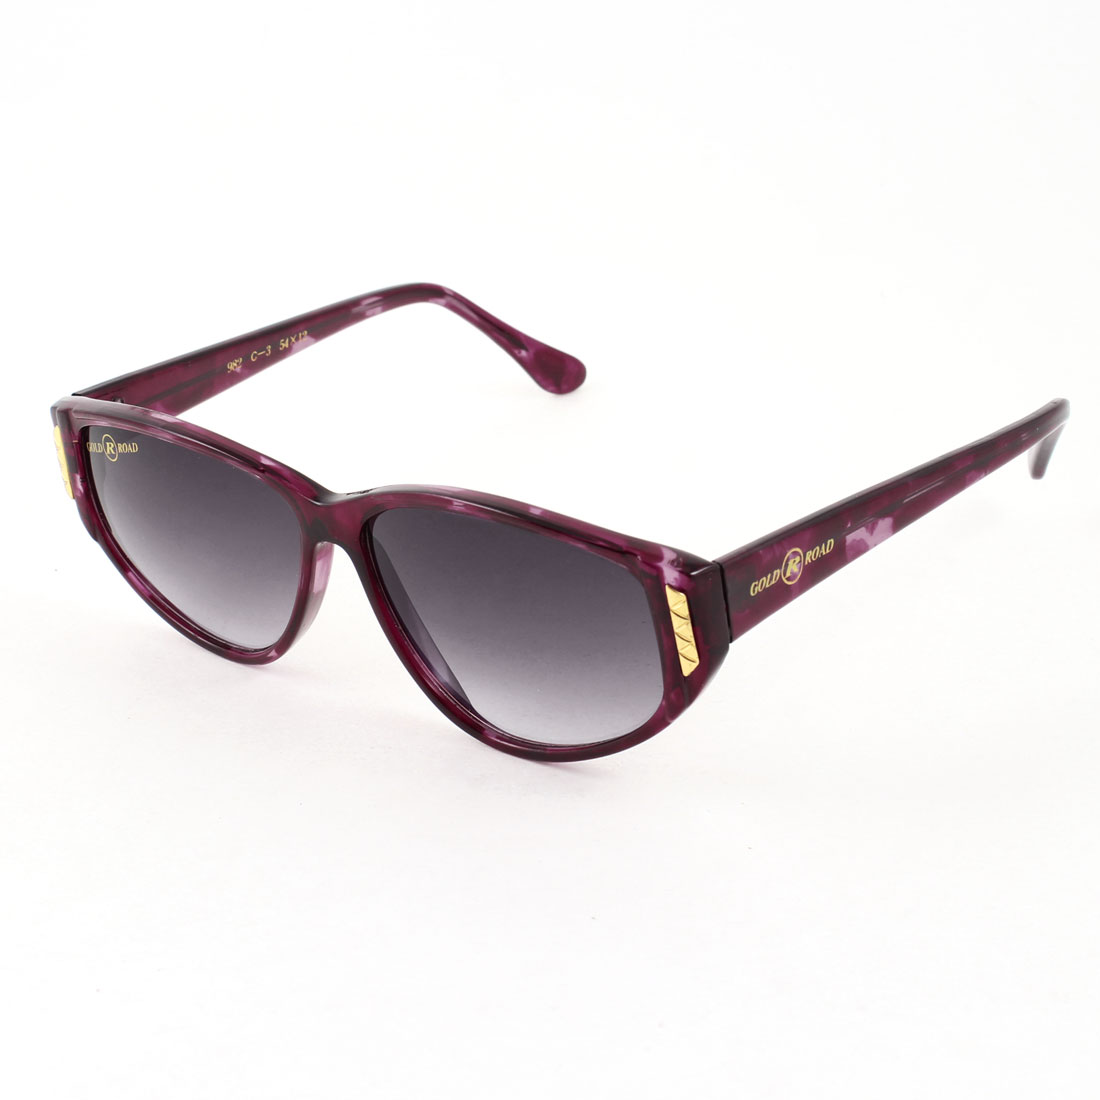 Lady Outdoor Dark Burgundy Lens Leopard Print Arm Full Rim One Bridge Sunglasses